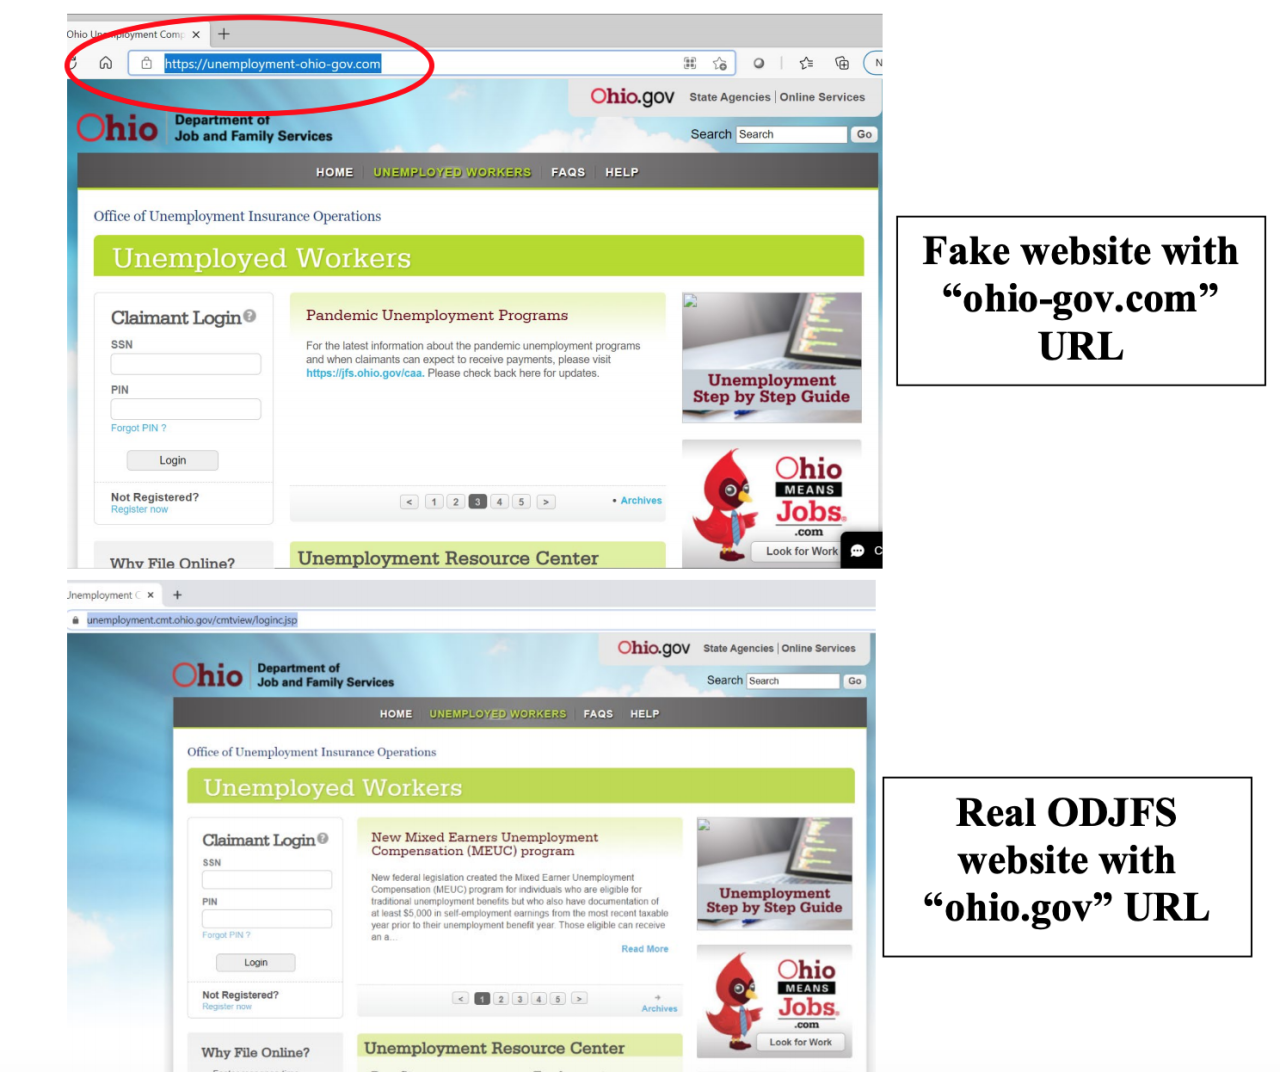 ODJFS released images showing how closely a fake website used by cyber criminals mirrors the real ODJFS website last month.